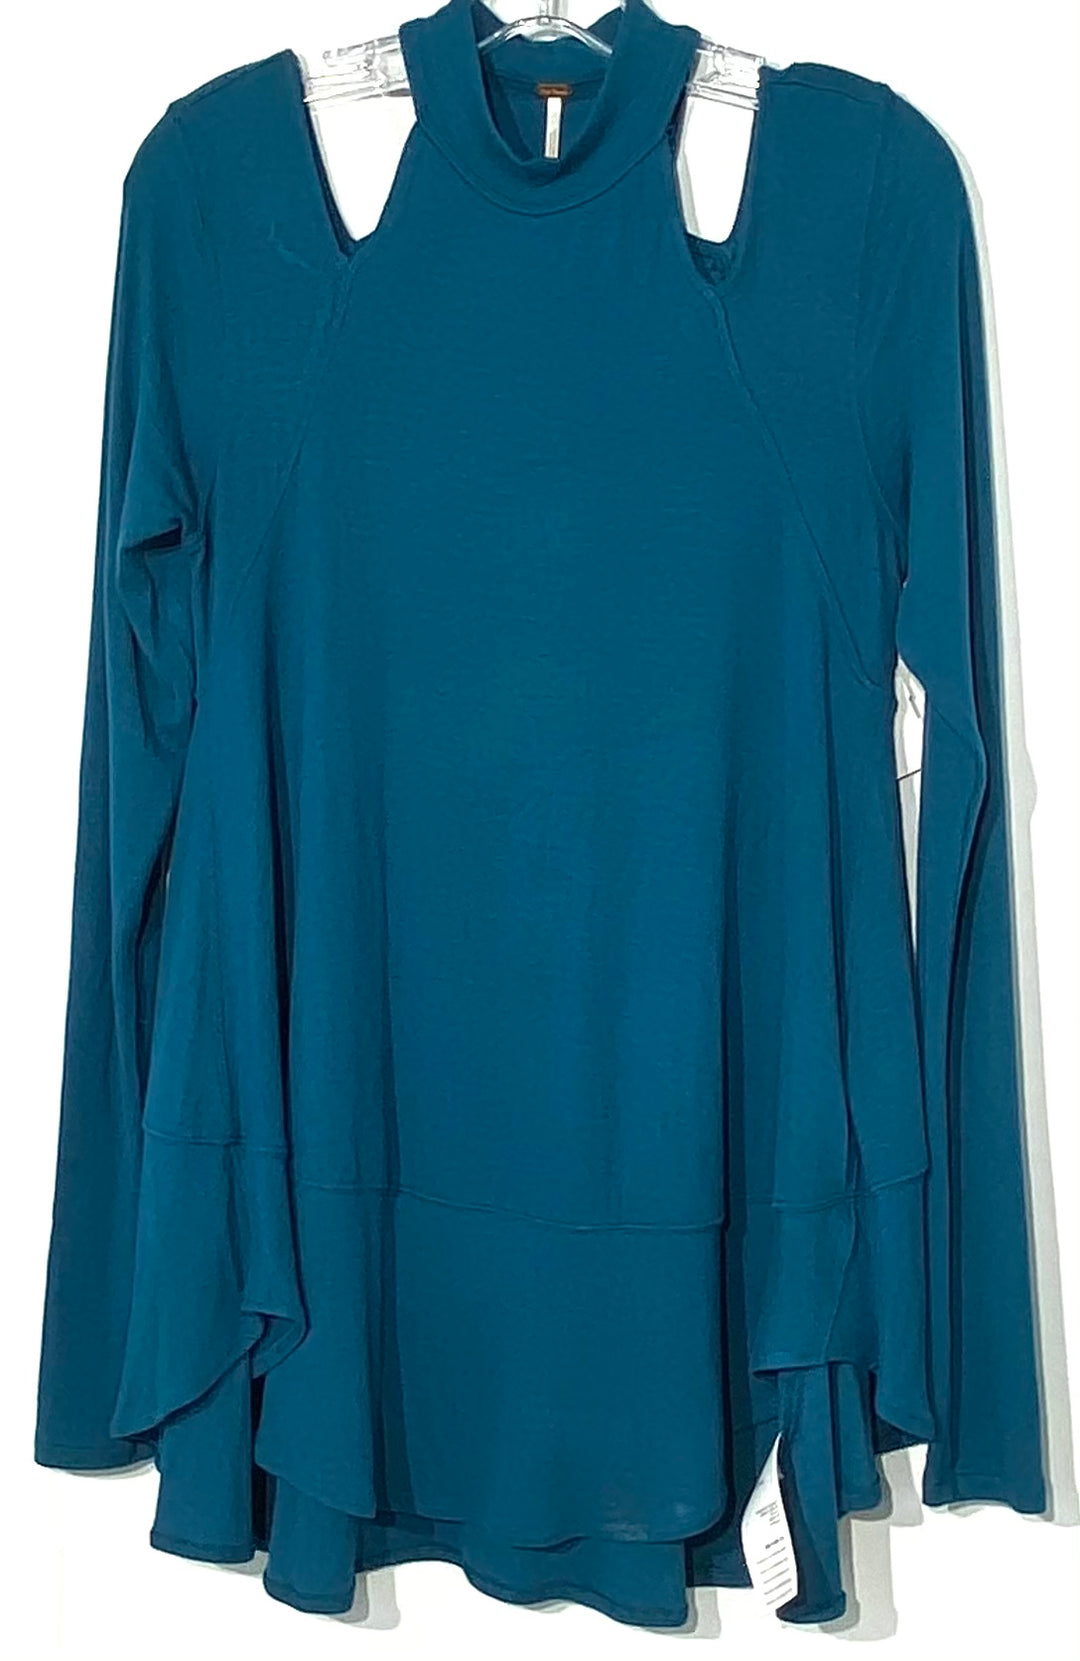 Primary Photo - BRAND: FREE PEOPLE <BR>STYLE: TOP LONG SLEEVE SWEATER <BR>COLOR: BLUE GREEN<BR>SIZE: S <BR>SKU: 262-26211-140815